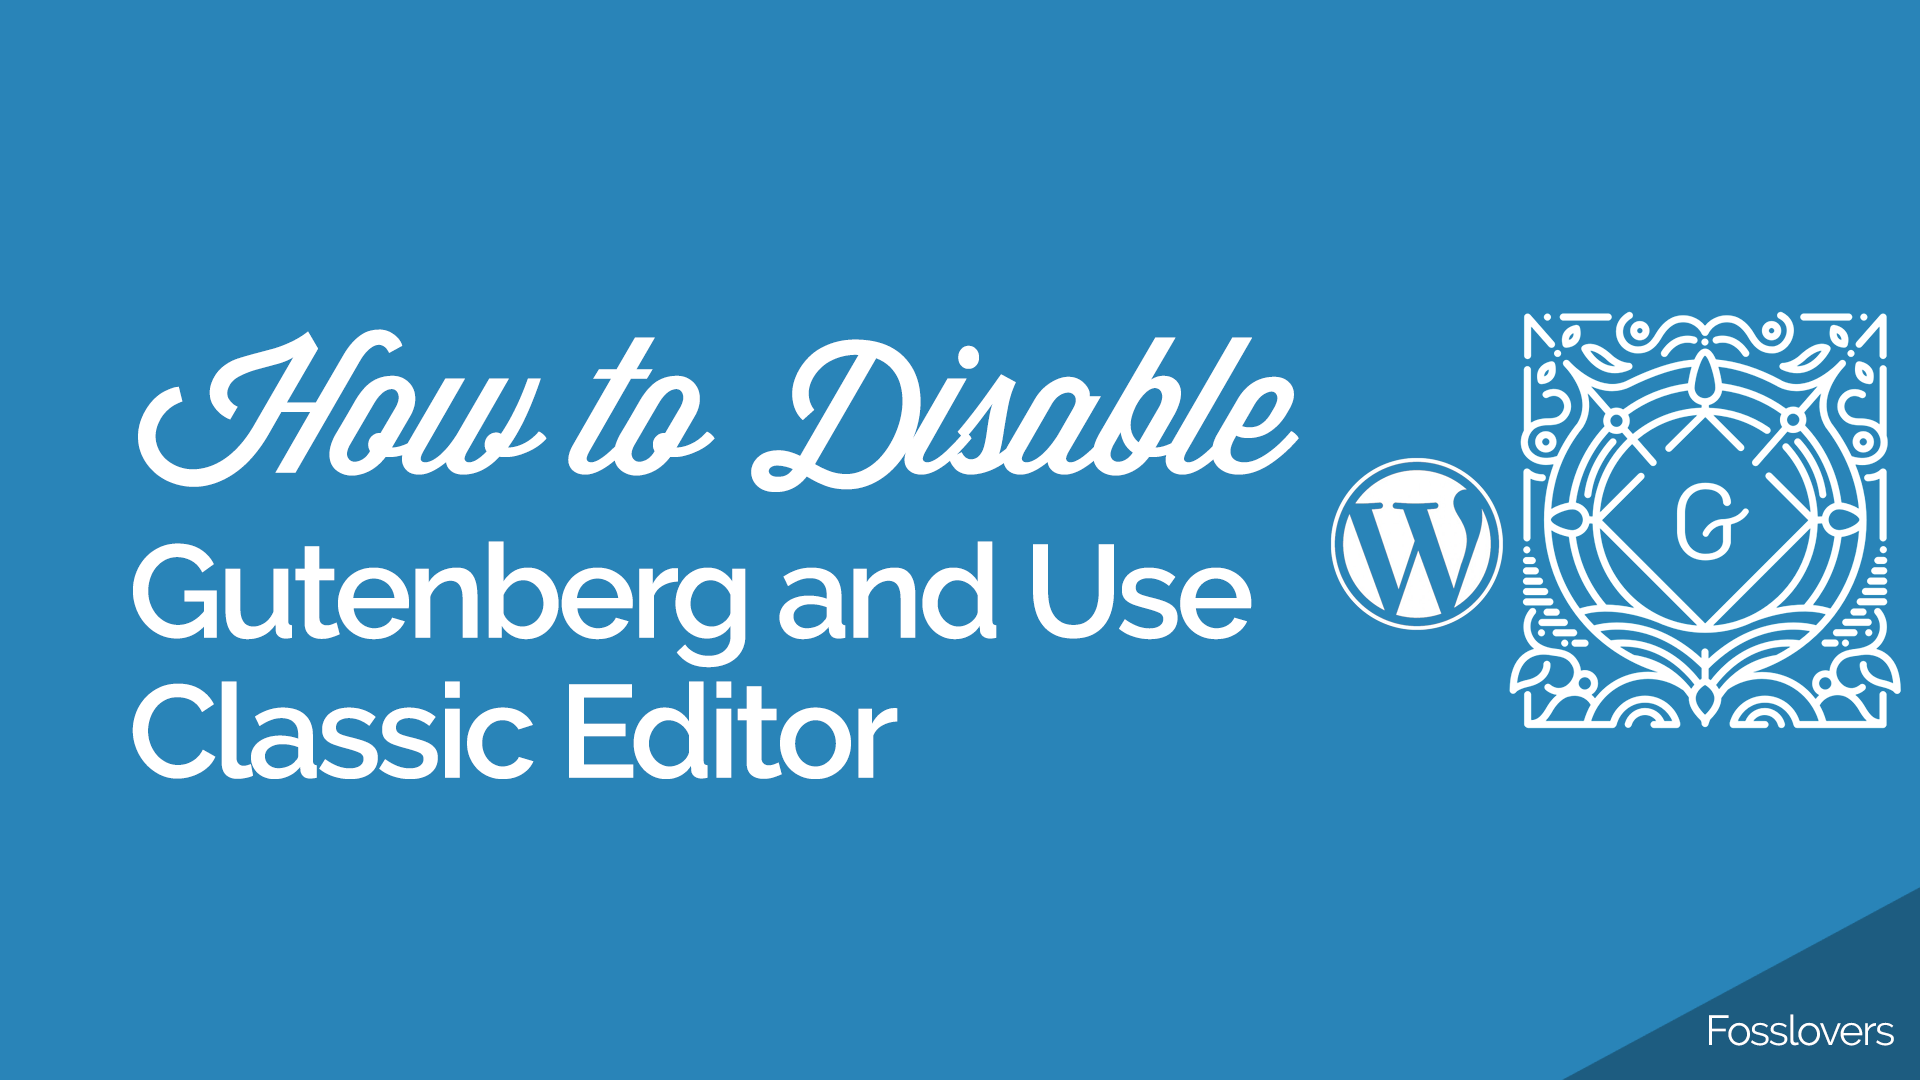 How to Disable Gutenberg and Use the Classic Editor in WordPress